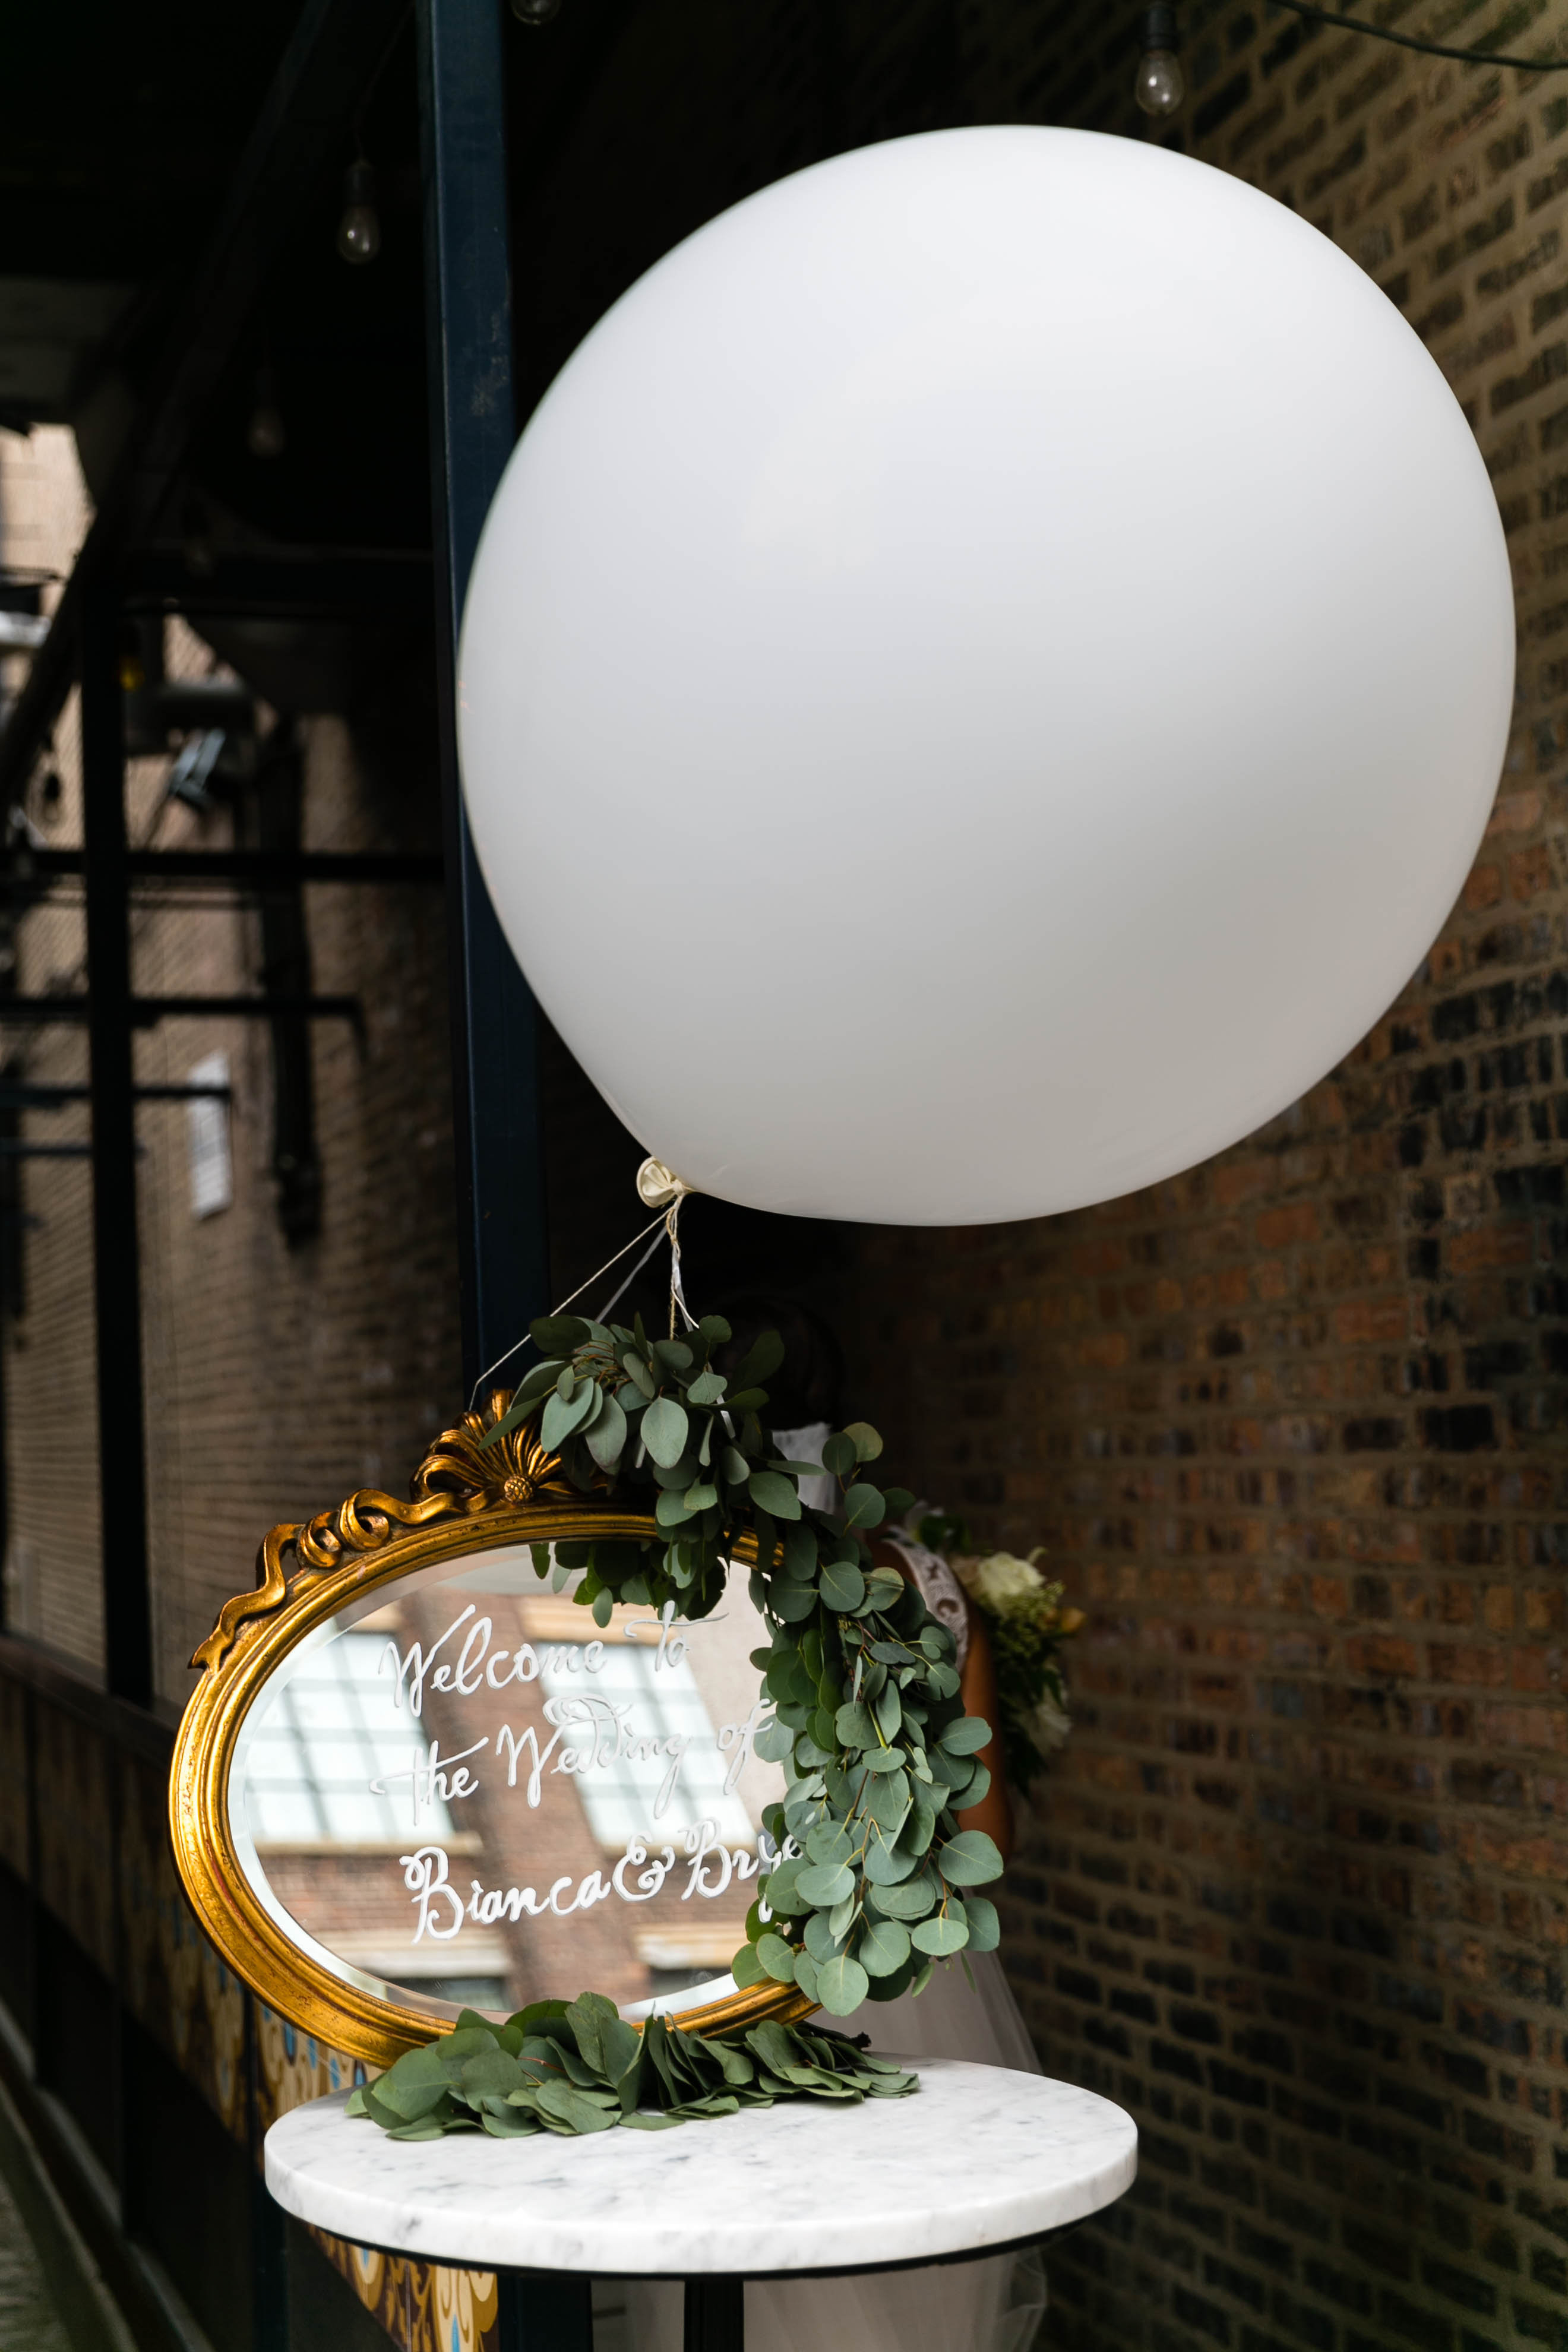 bianca-bryen-wedding-balloon-175-s112509-0216.jpg